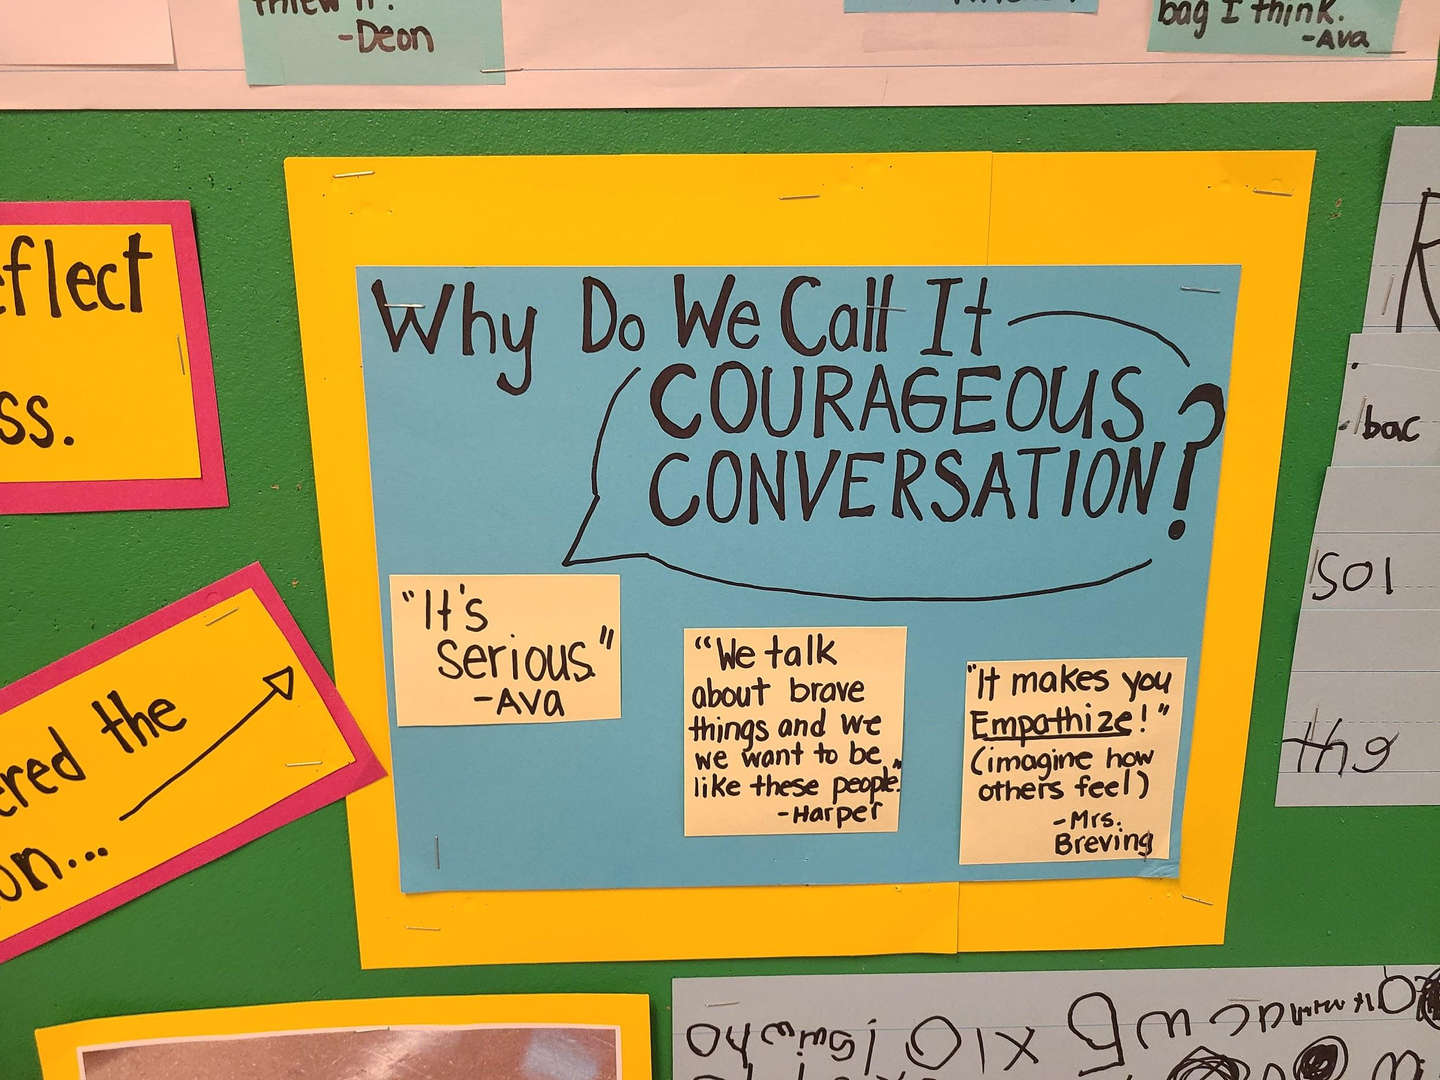 Why Do We Call It Courageous Conversation?